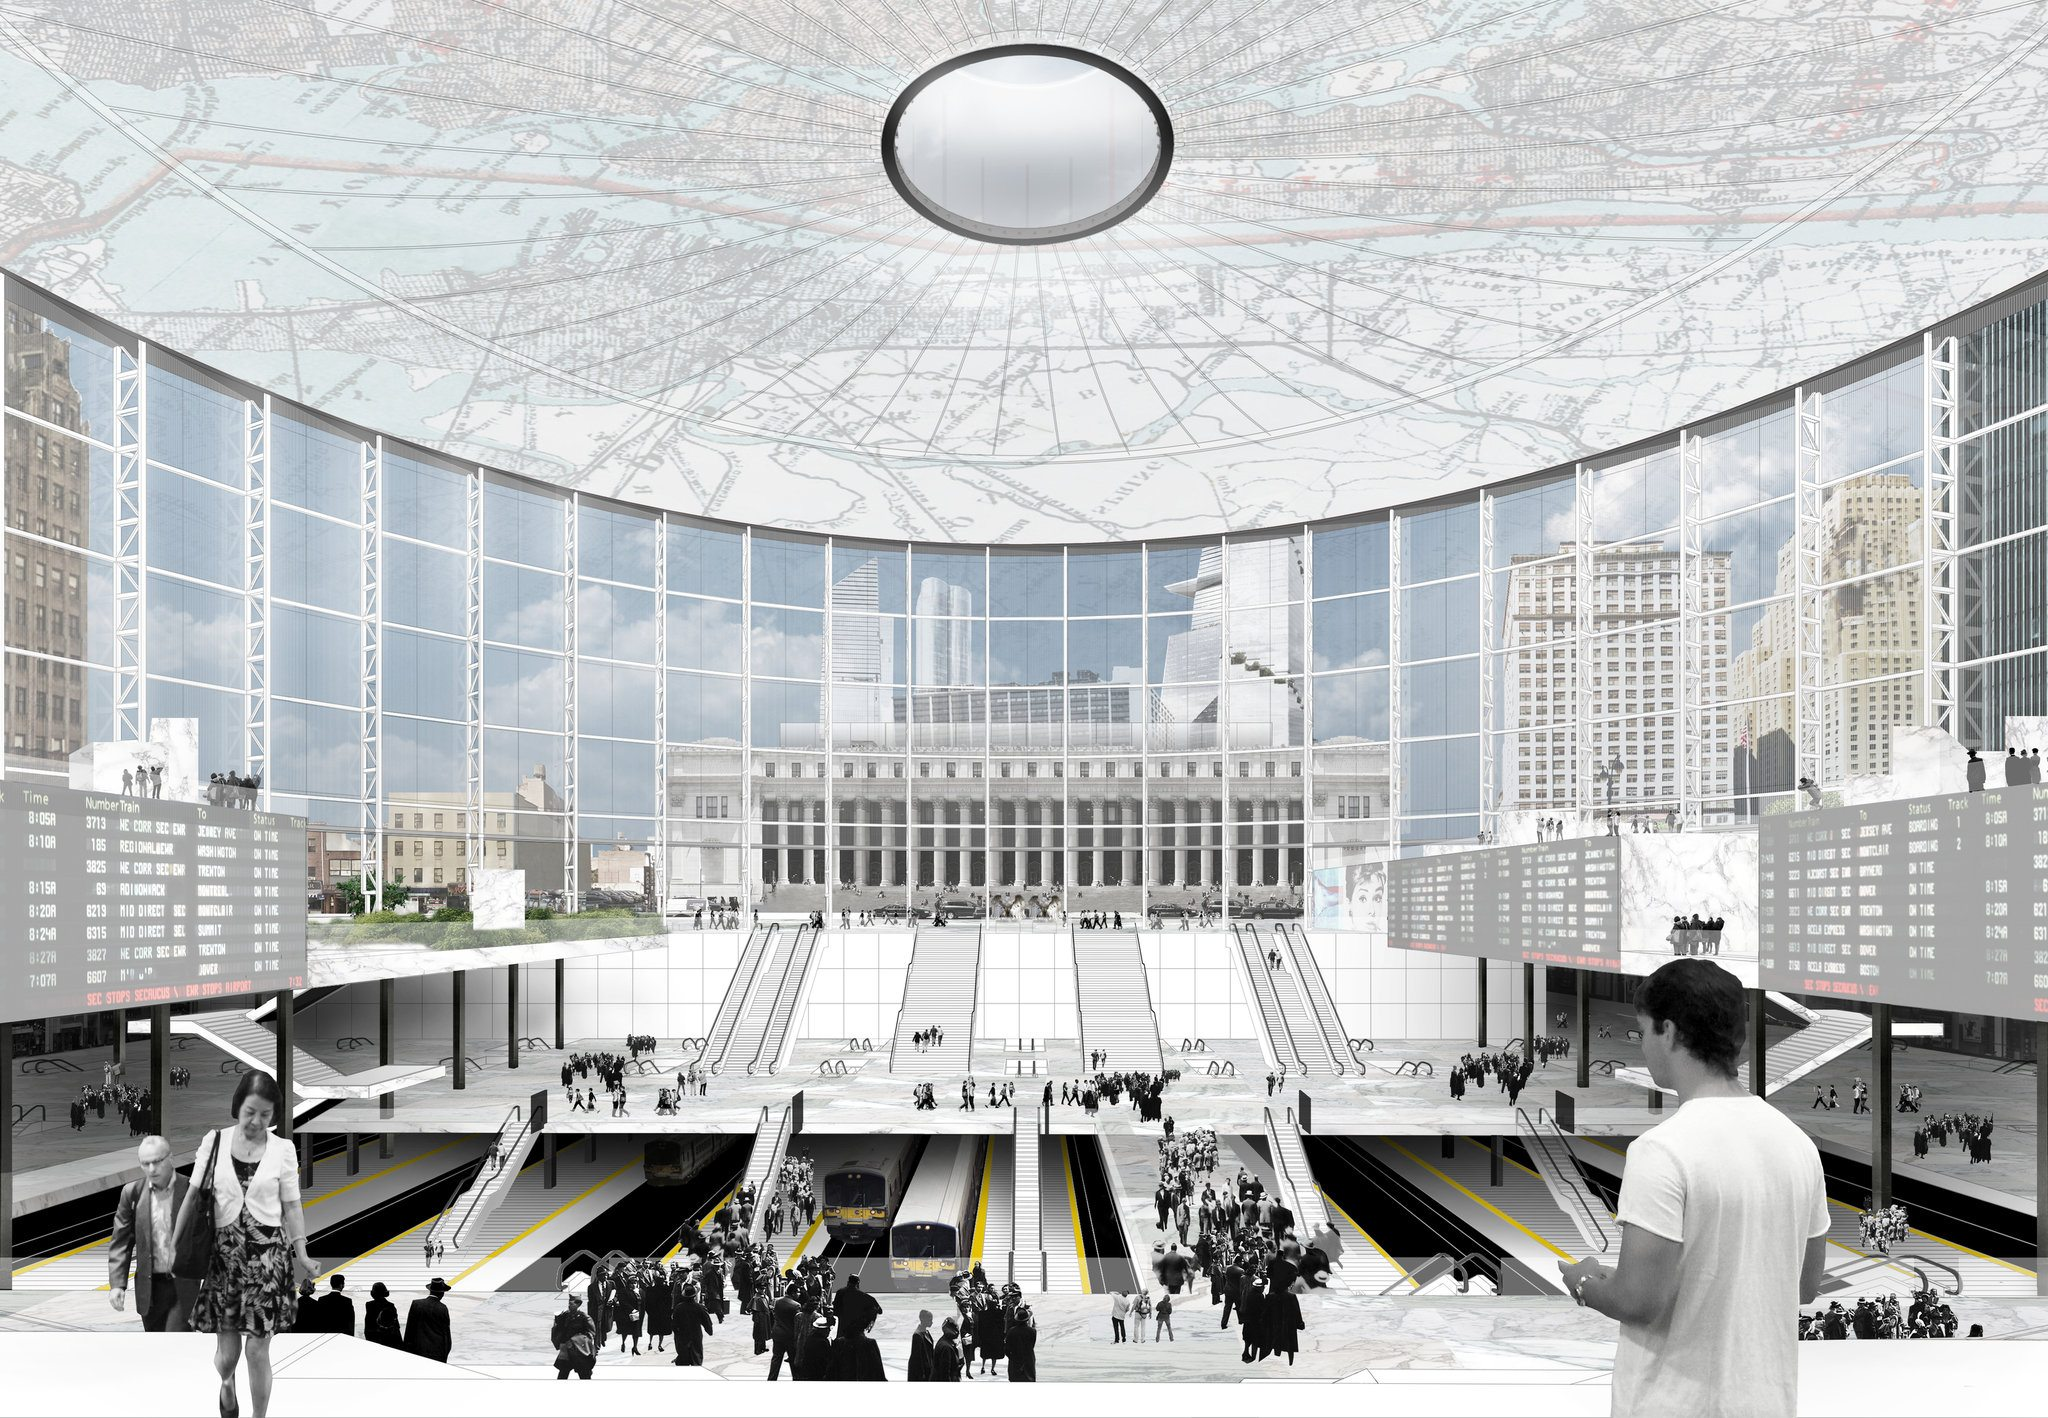 Vishaan Chakrabarti Reveals Idea To Repurpose Madison Square Garden As Part Of The Penn Station